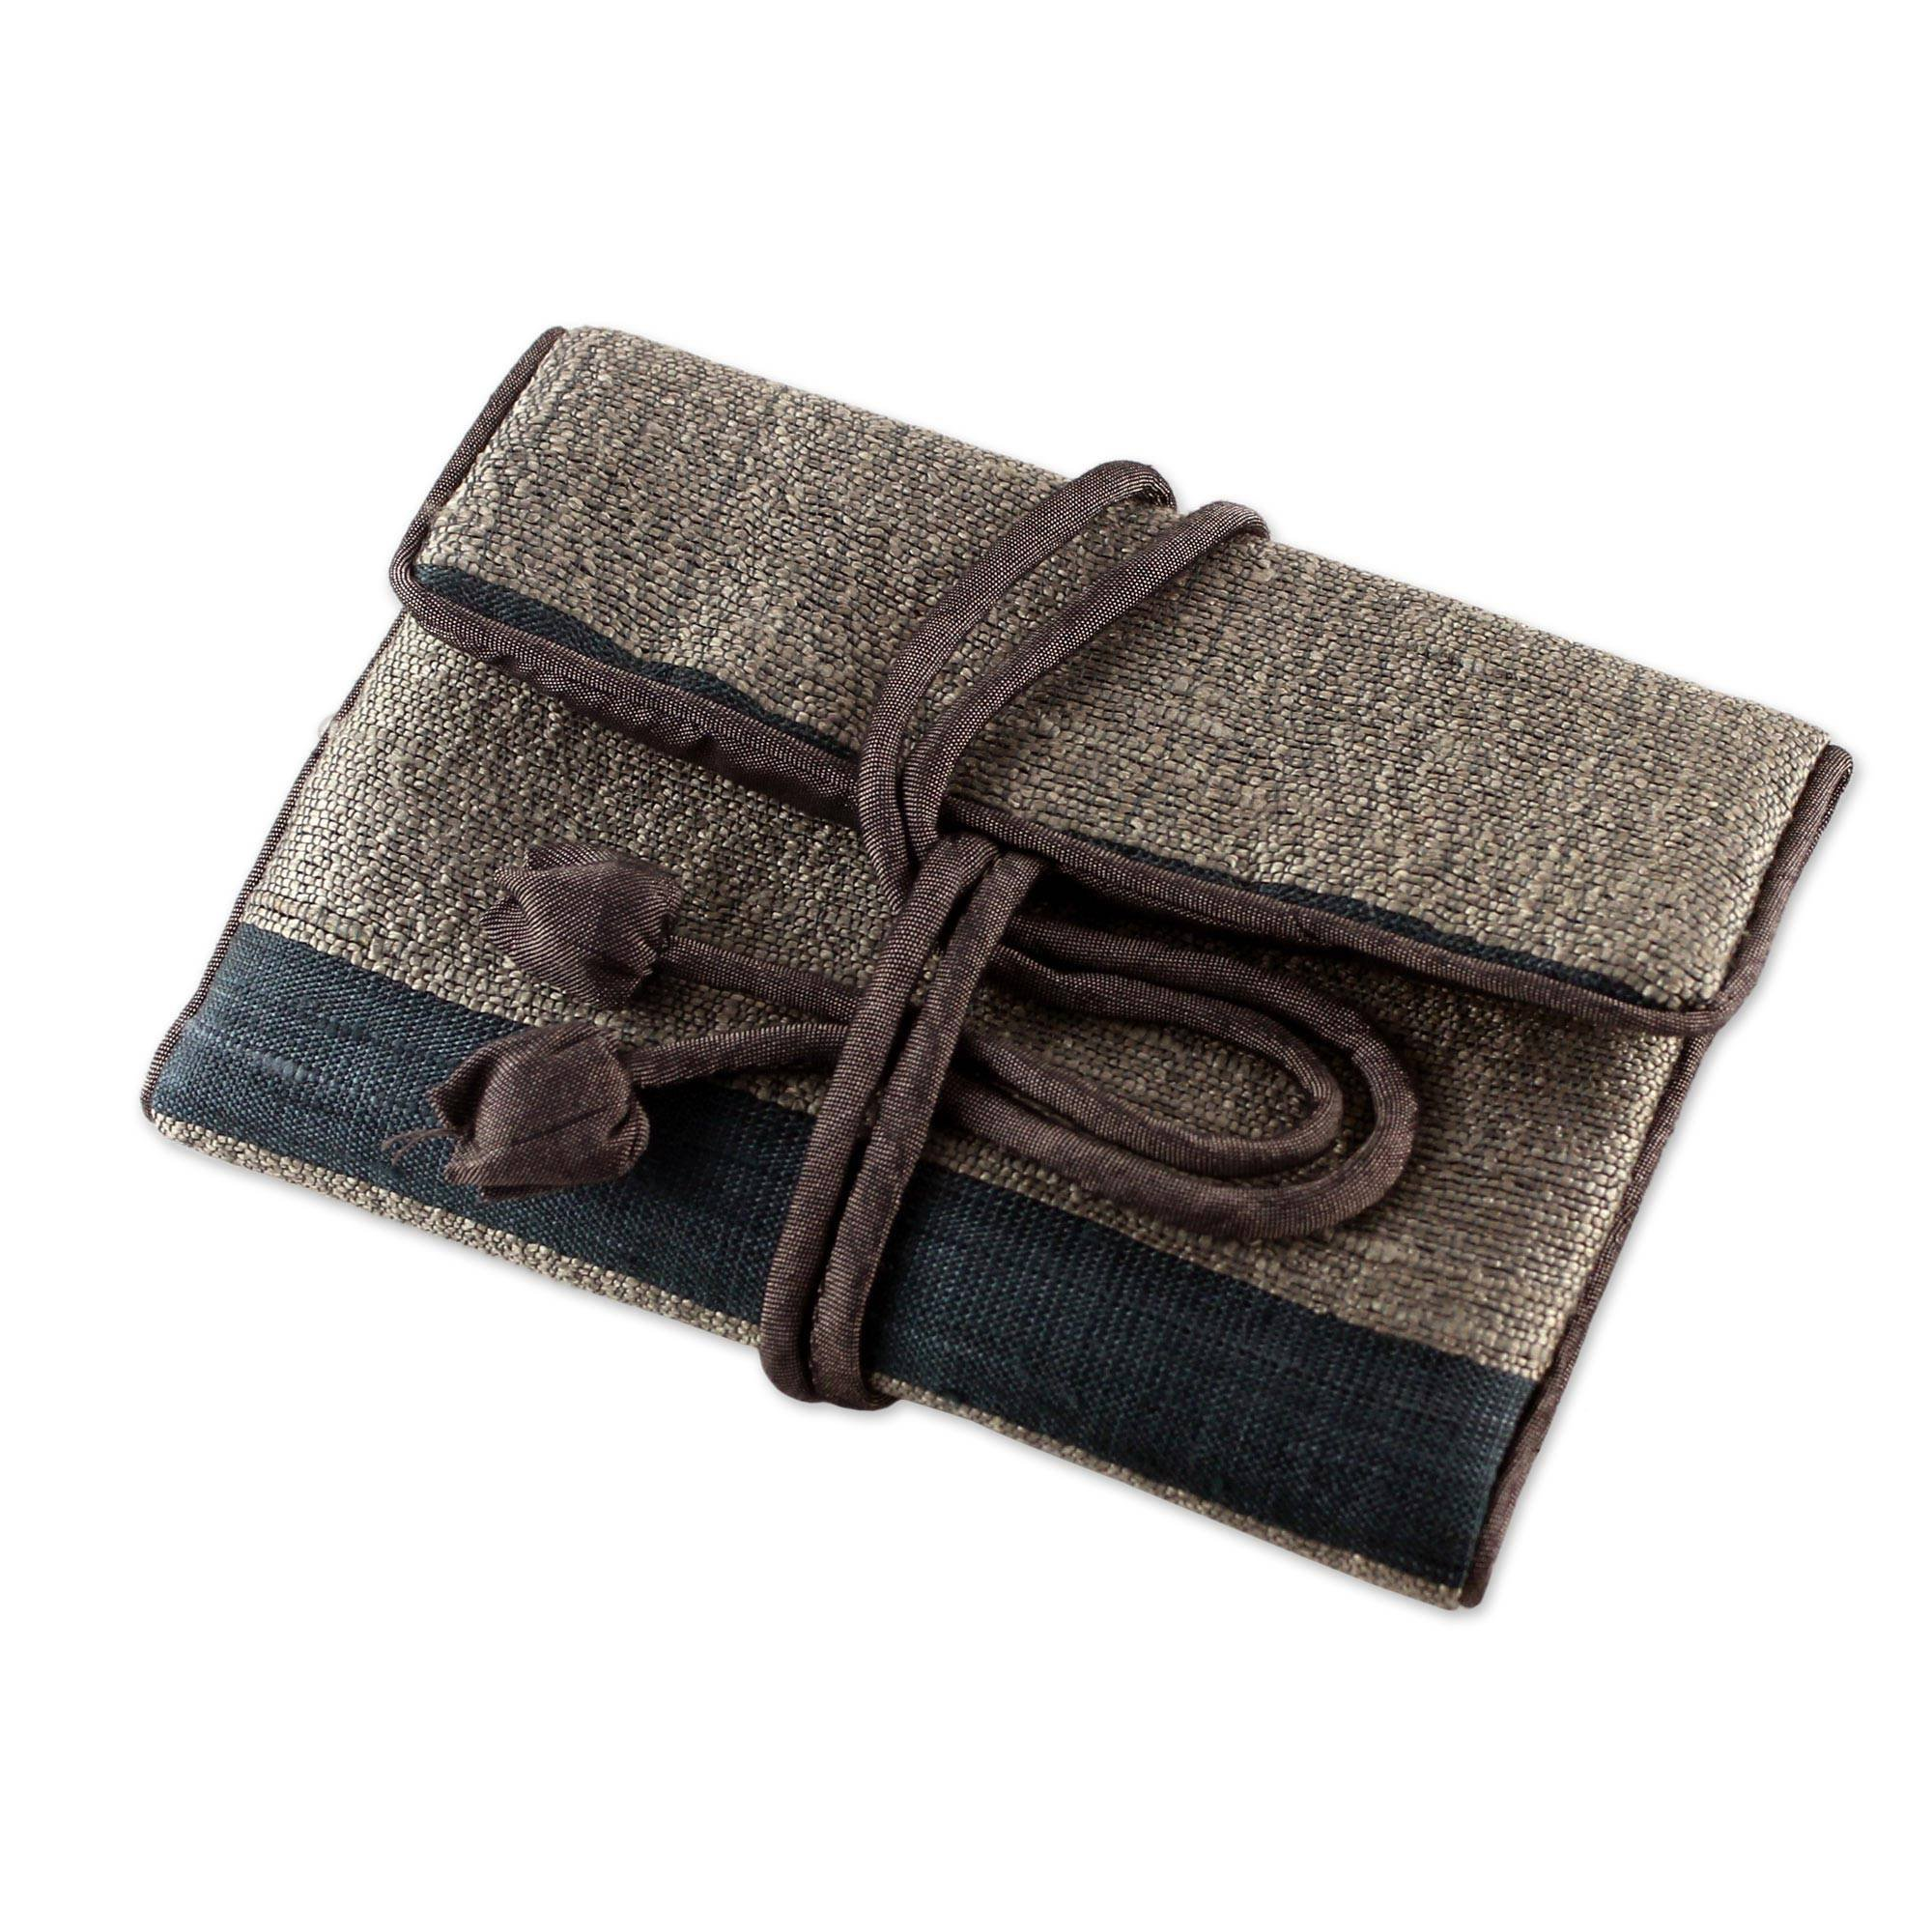 NOVICA Silk Jewelry Roll, Black and Grey, Happy Travels In Taupe'